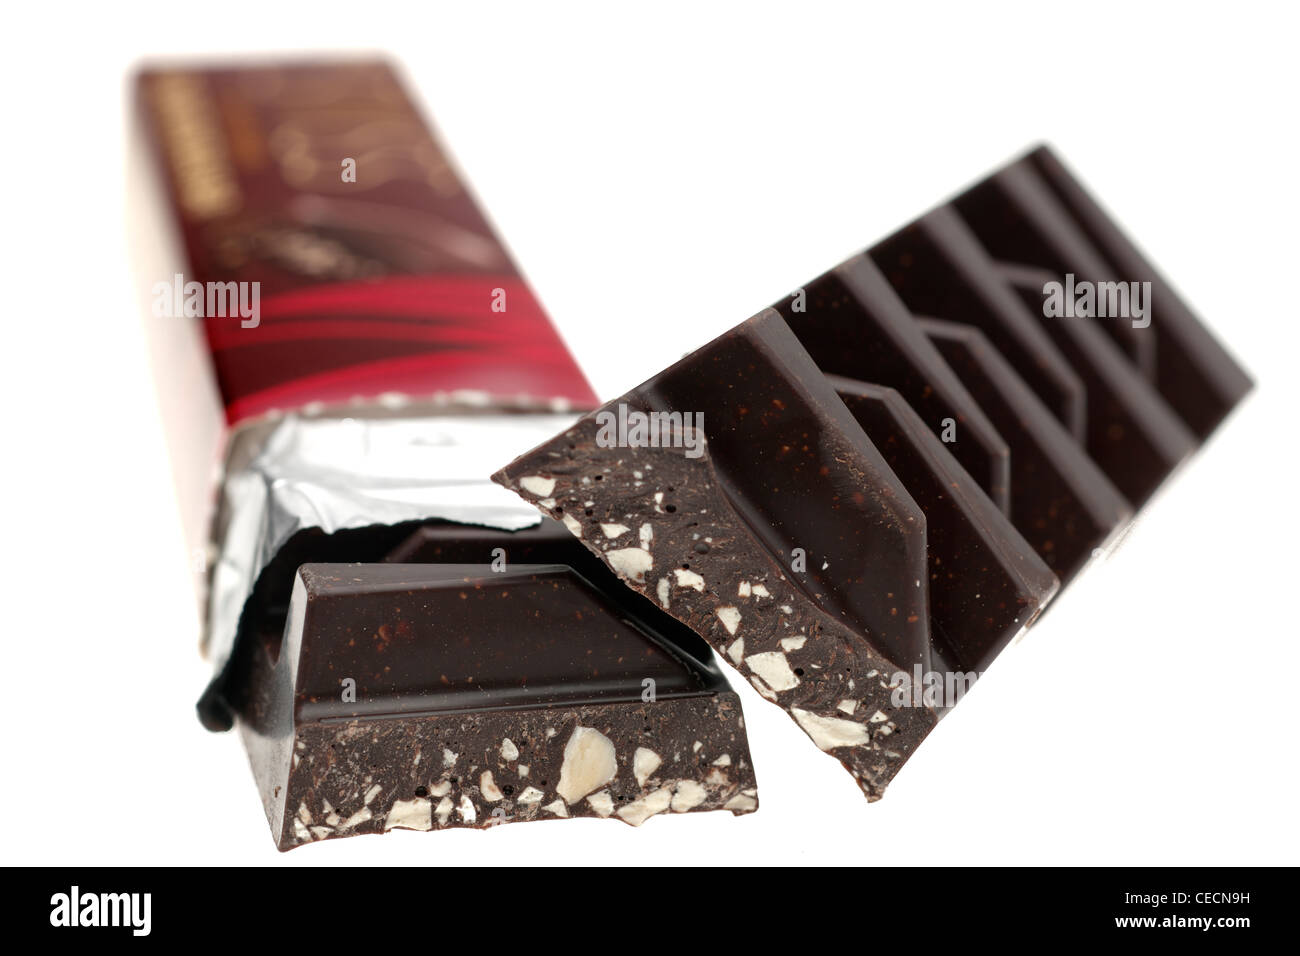 Chunky dark chocolate with almond nougat pieces - Stock Image